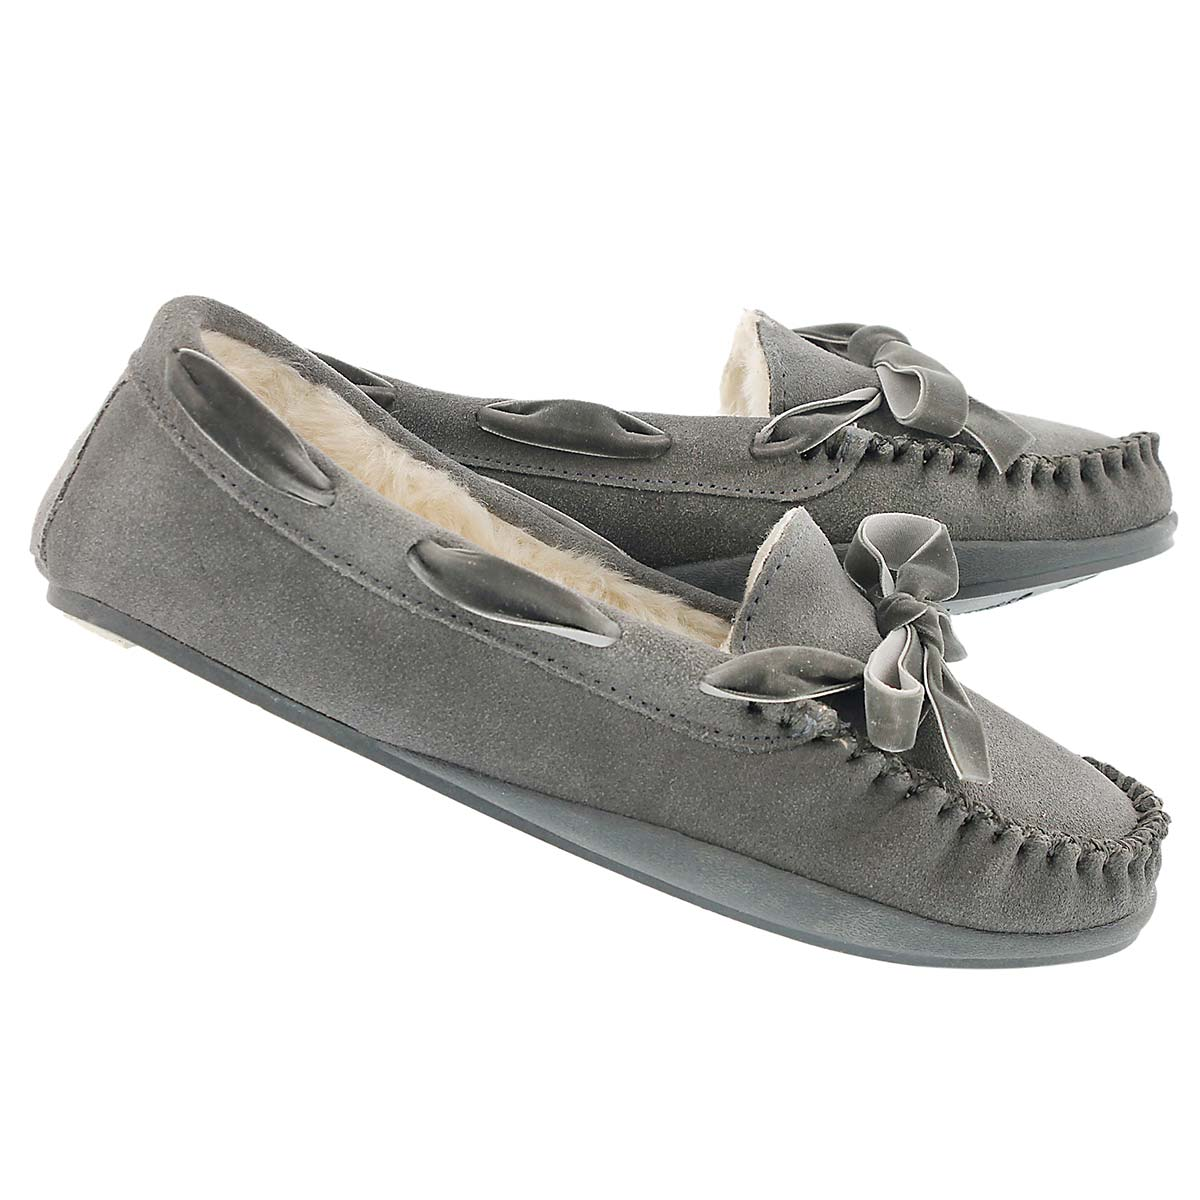 Lds Rochelle grey suede moccasin